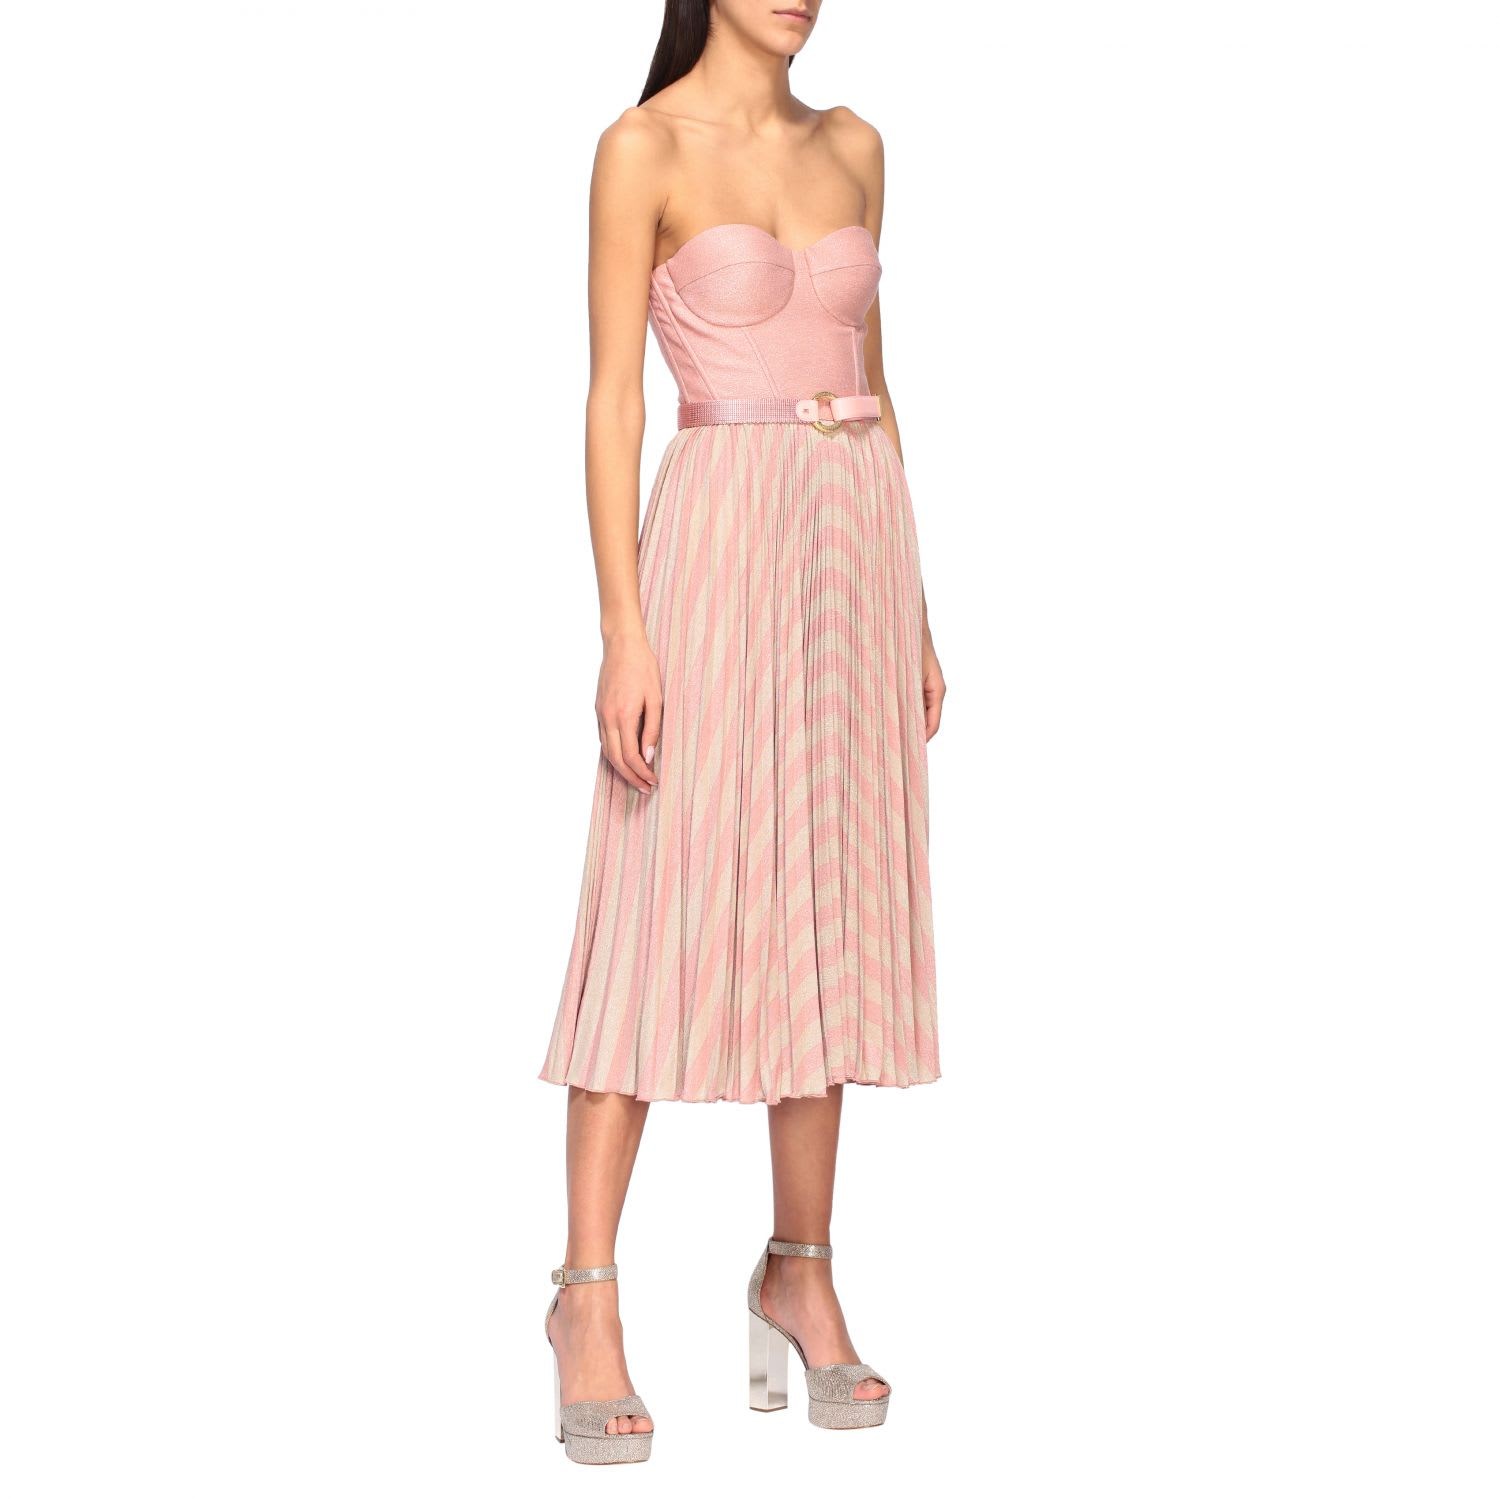 Elisabetta Franchi Dress Elisabetta Franchi Bodice Dress With Two-tone Lurex Effect Skirt